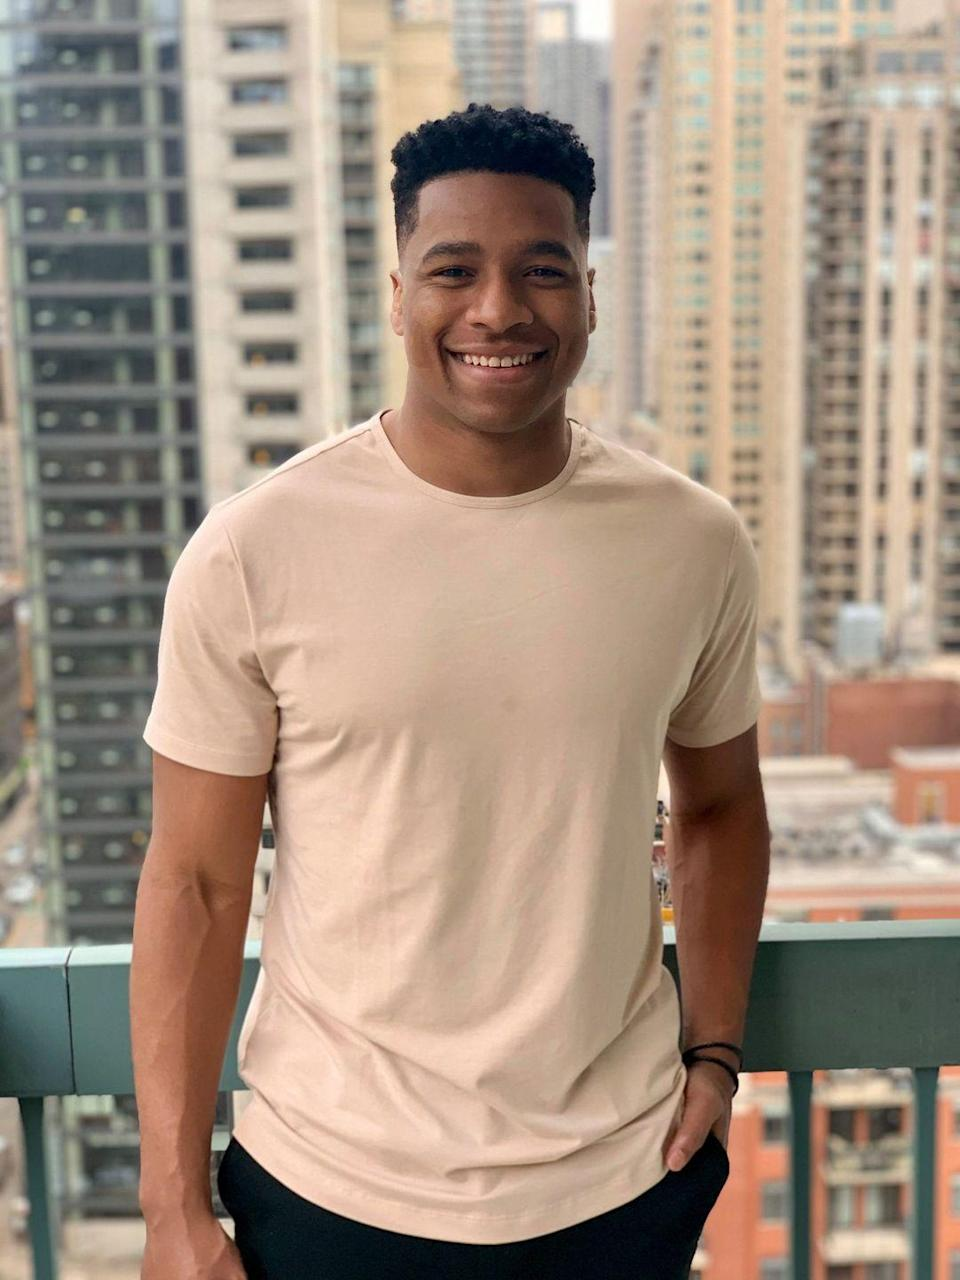 """<p>Andrew hails from a Windy City suburb. Fun fact: He's Clay Harbor's cousin. Andrew is a football player, too, for the Austrian Football League.</p><p><strong>Age: 26</strong></p><p><strong>Hometown: Waukegan, IL</strong></p><p><strong>Instagram: <a href=""""https://www.instagram.com/andrewzspencer/"""" rel=""""nofollow noopener"""" target=""""_blank"""" data-ylk=""""slk:@andrewzspencer"""" class=""""link rapid-noclick-resp"""">@andrewzspencer</a></strong></p>"""